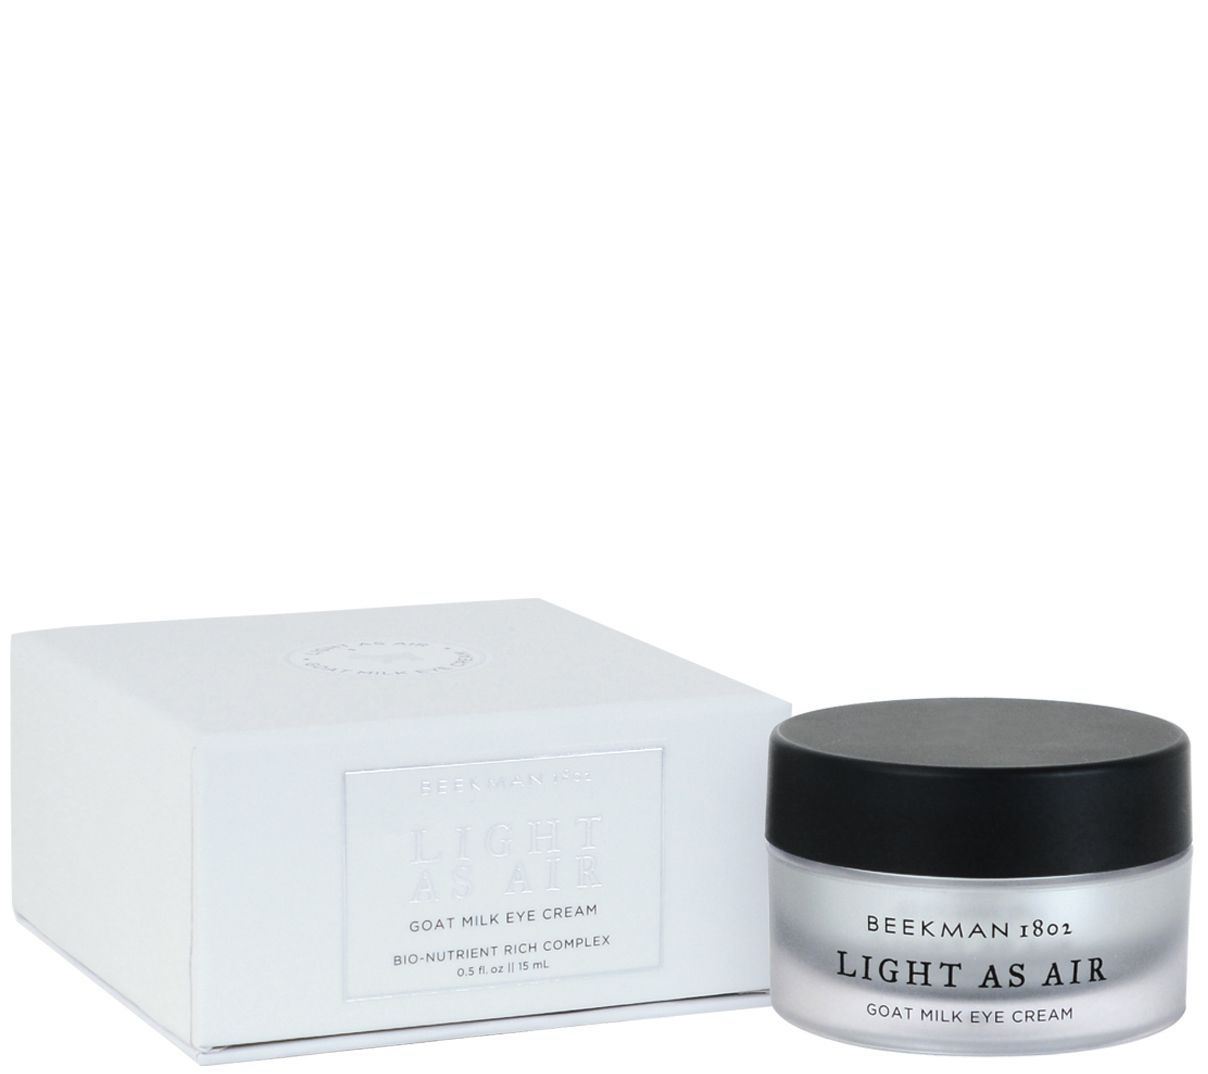 Beekman 1802 Light as Air Goat Milk Eye Cream — QVC com